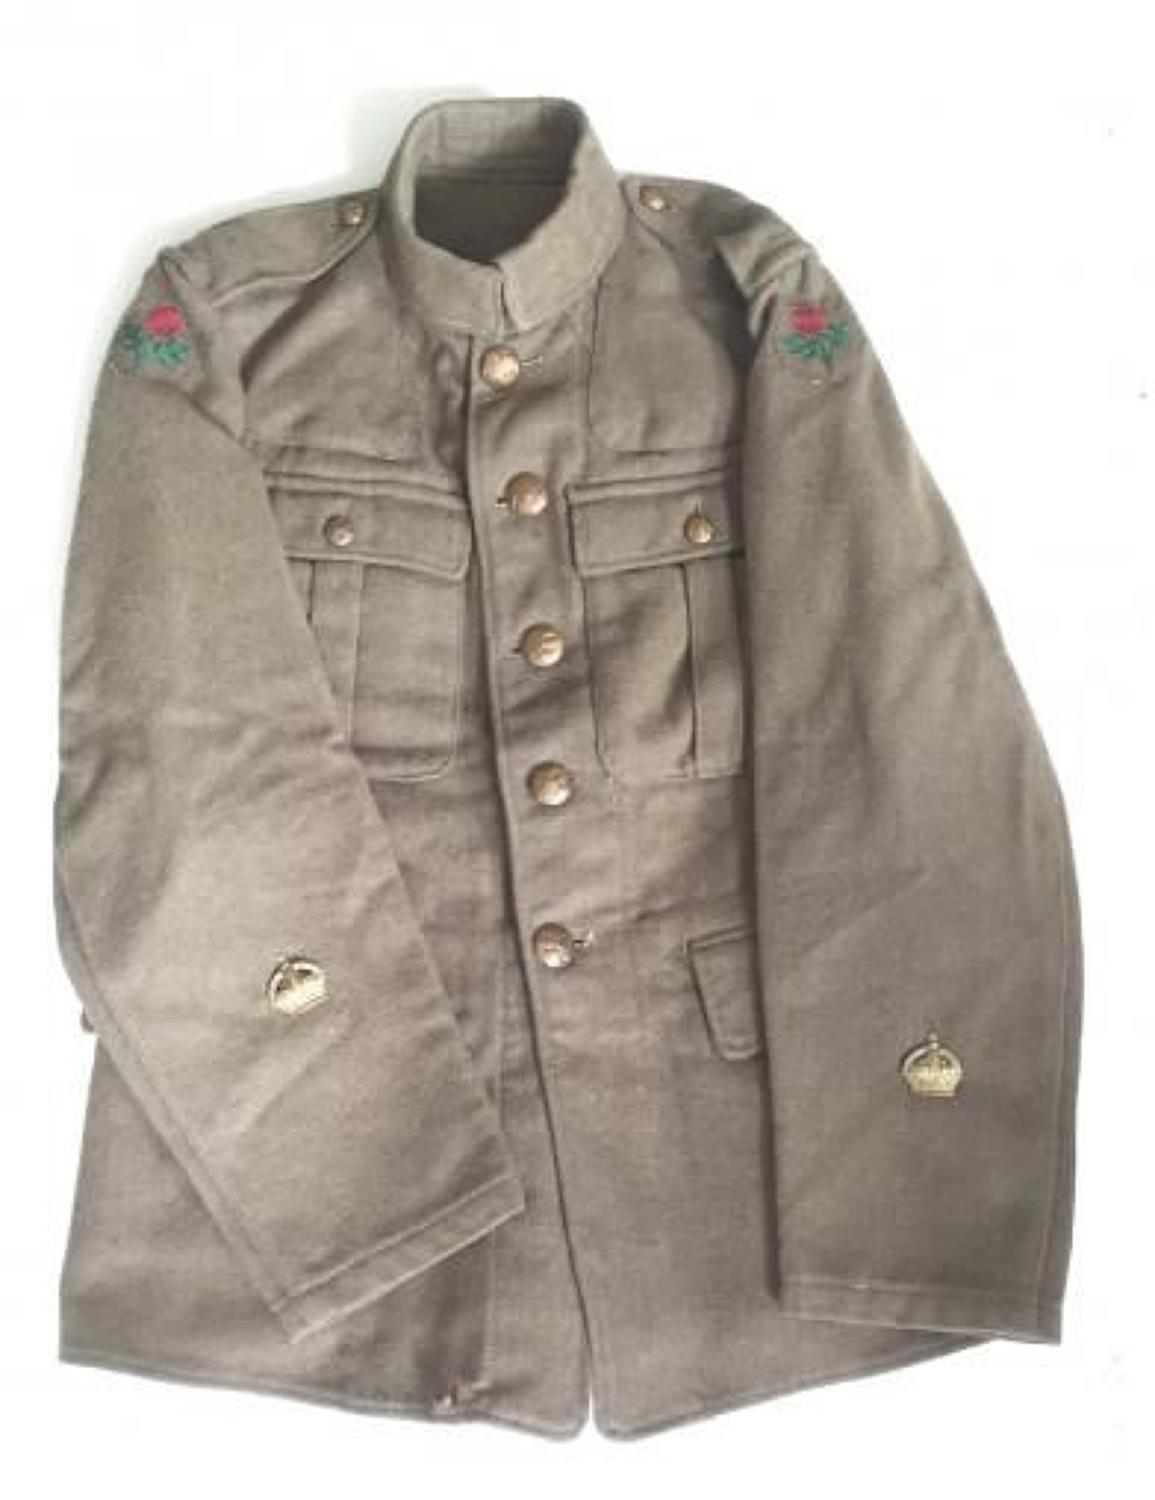 WW1 55th (West Lancashire) Division 1902 Other Ranks Trench Tunic.